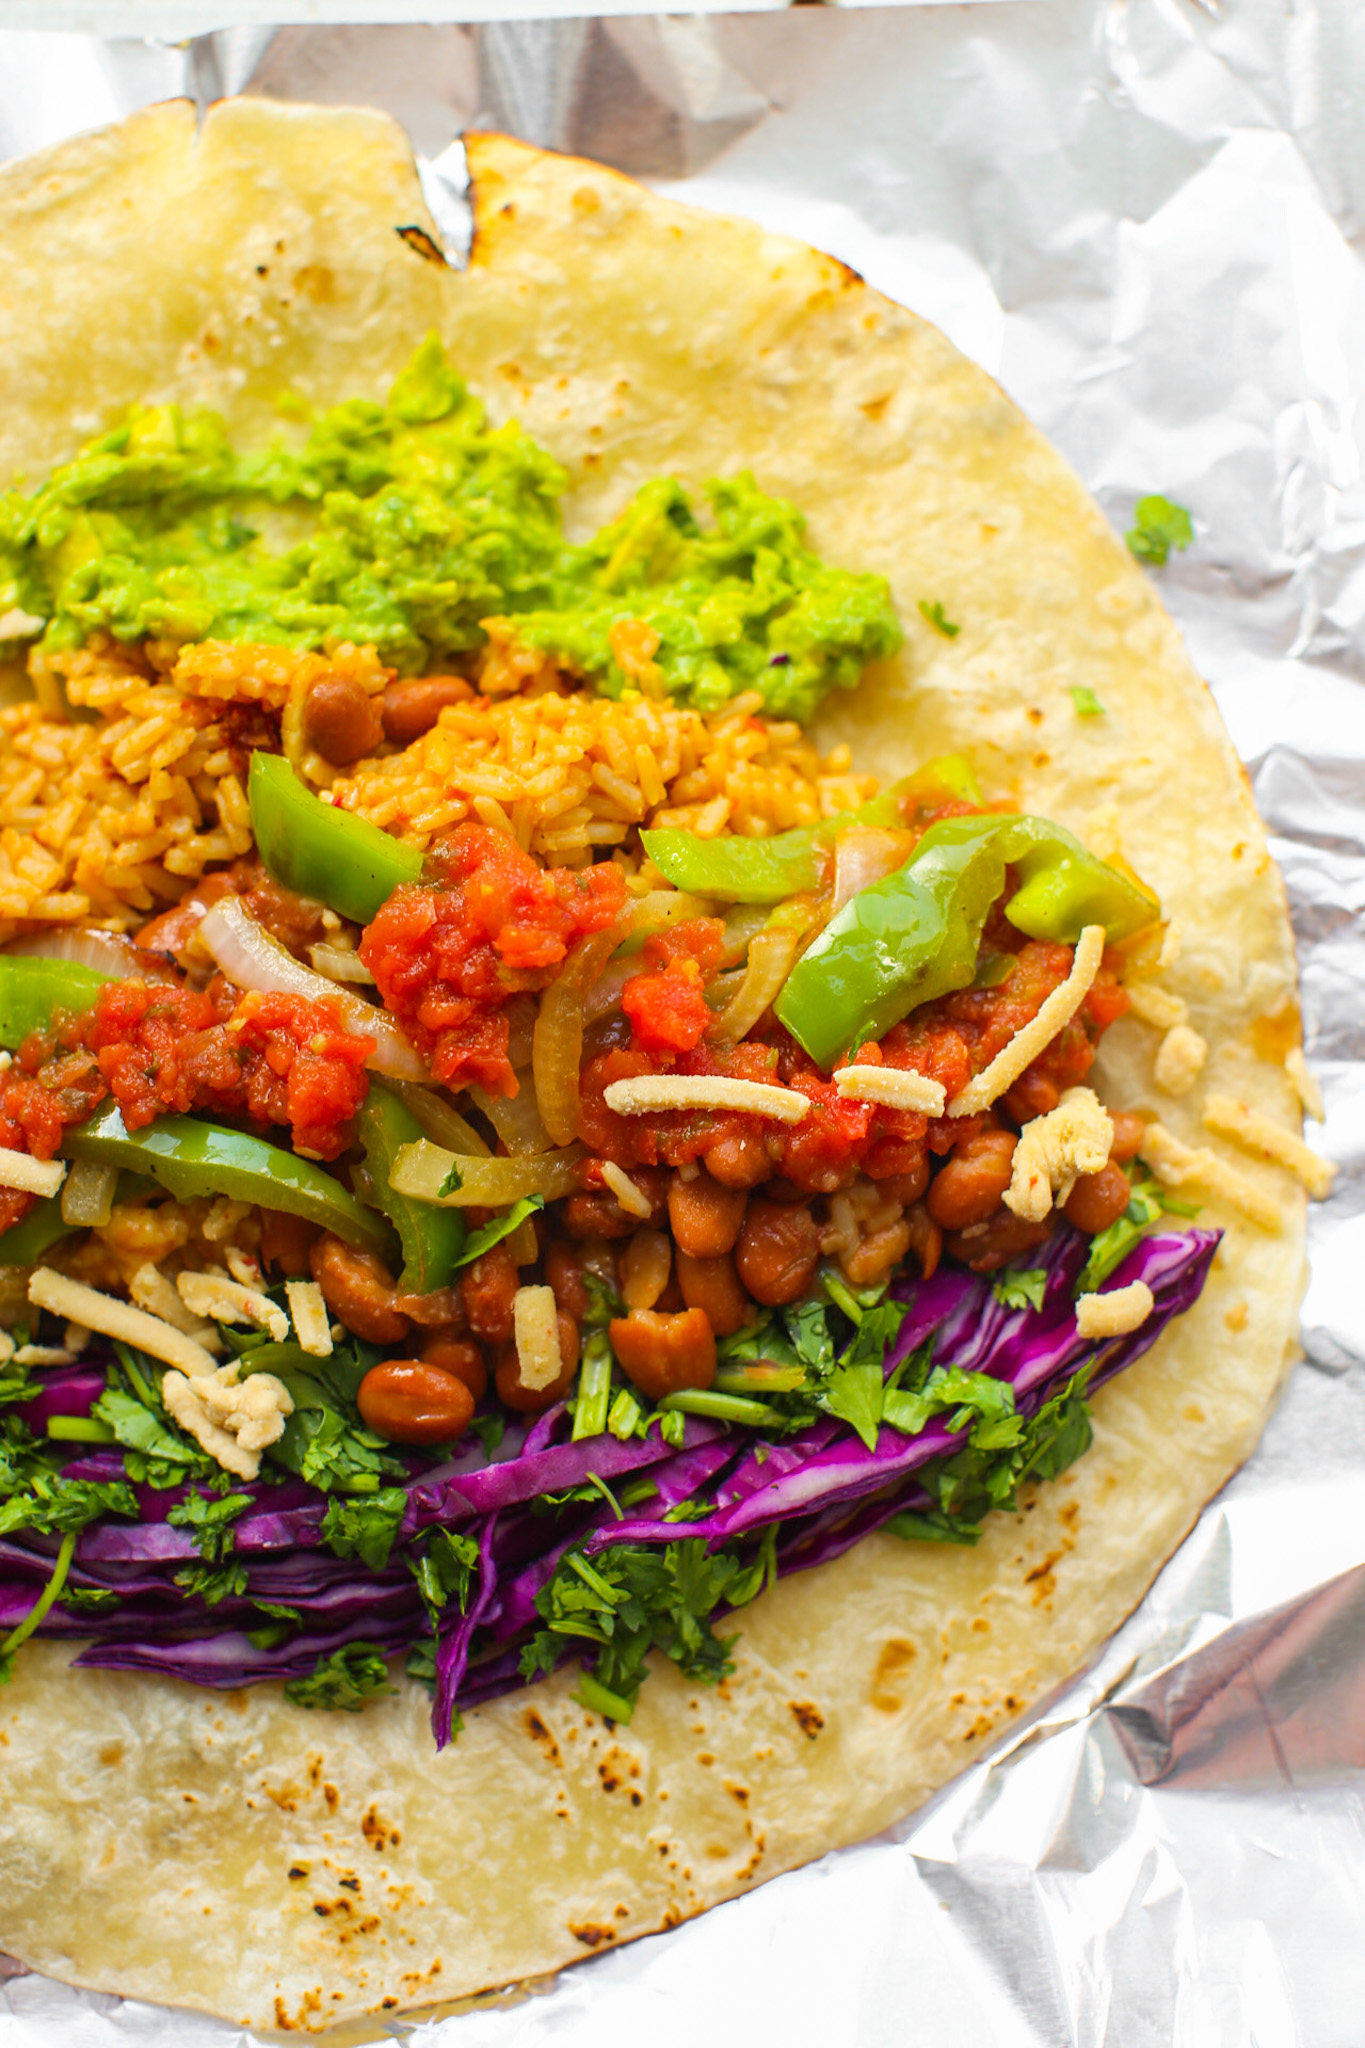 ingredients in a tortilla for burrito